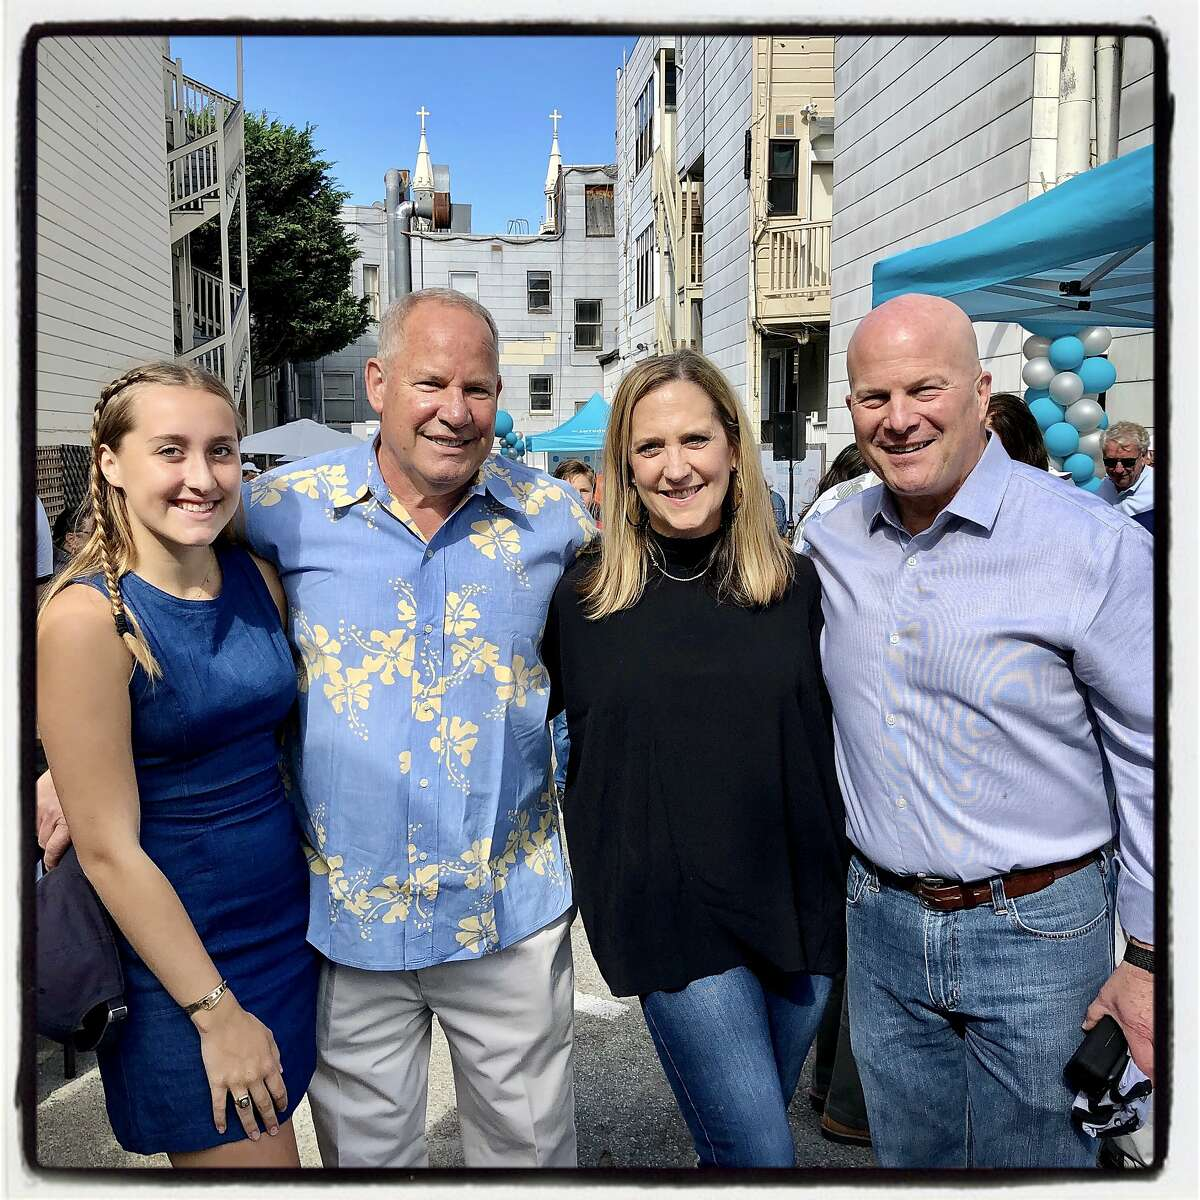 Jacqueline Carlson (left) with her parental Penny Pitch co-chairs Dale Carlson and Meagan Levitan and committee member Greg Suhr. Oct. 18, 2019.